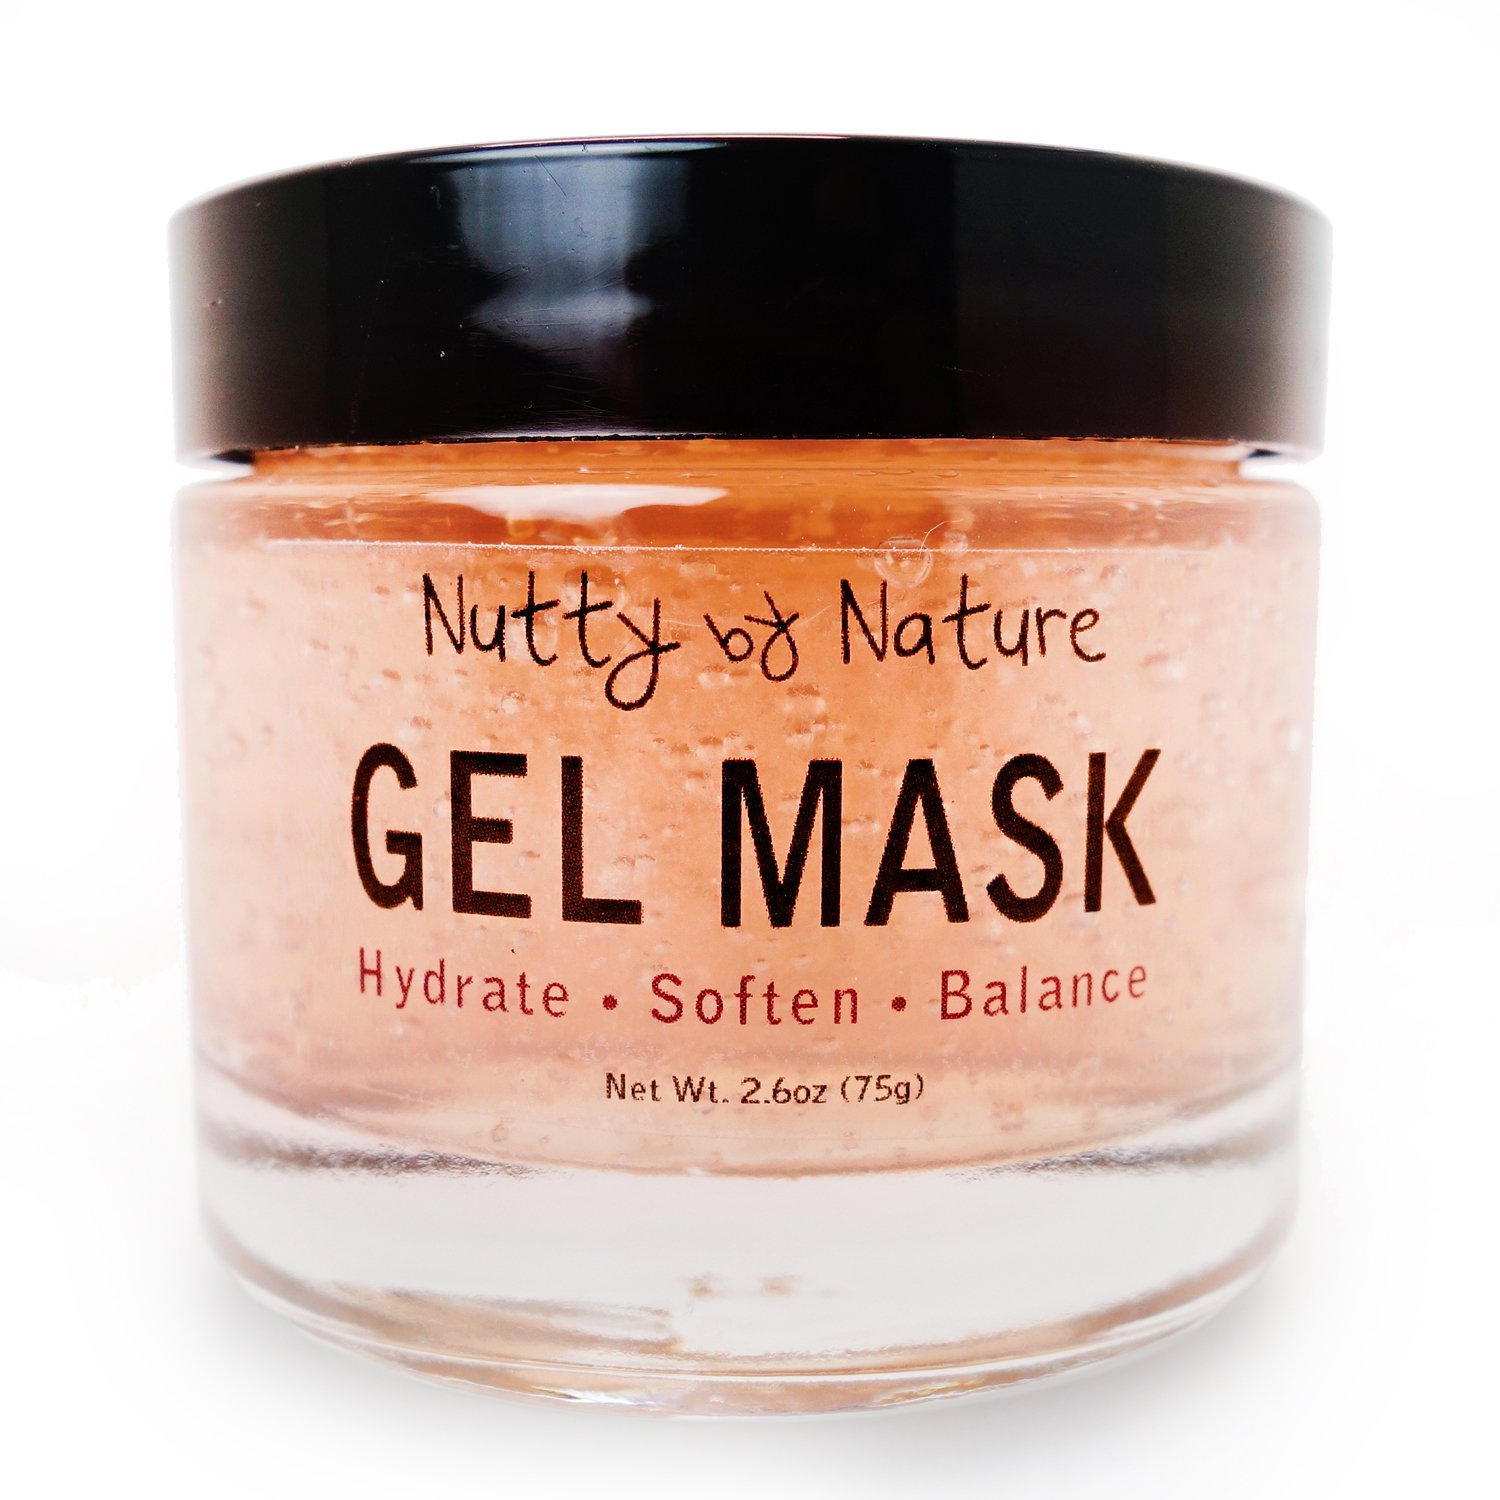 Nutty By Nature Hydrating Gel Mask - 100% Natural